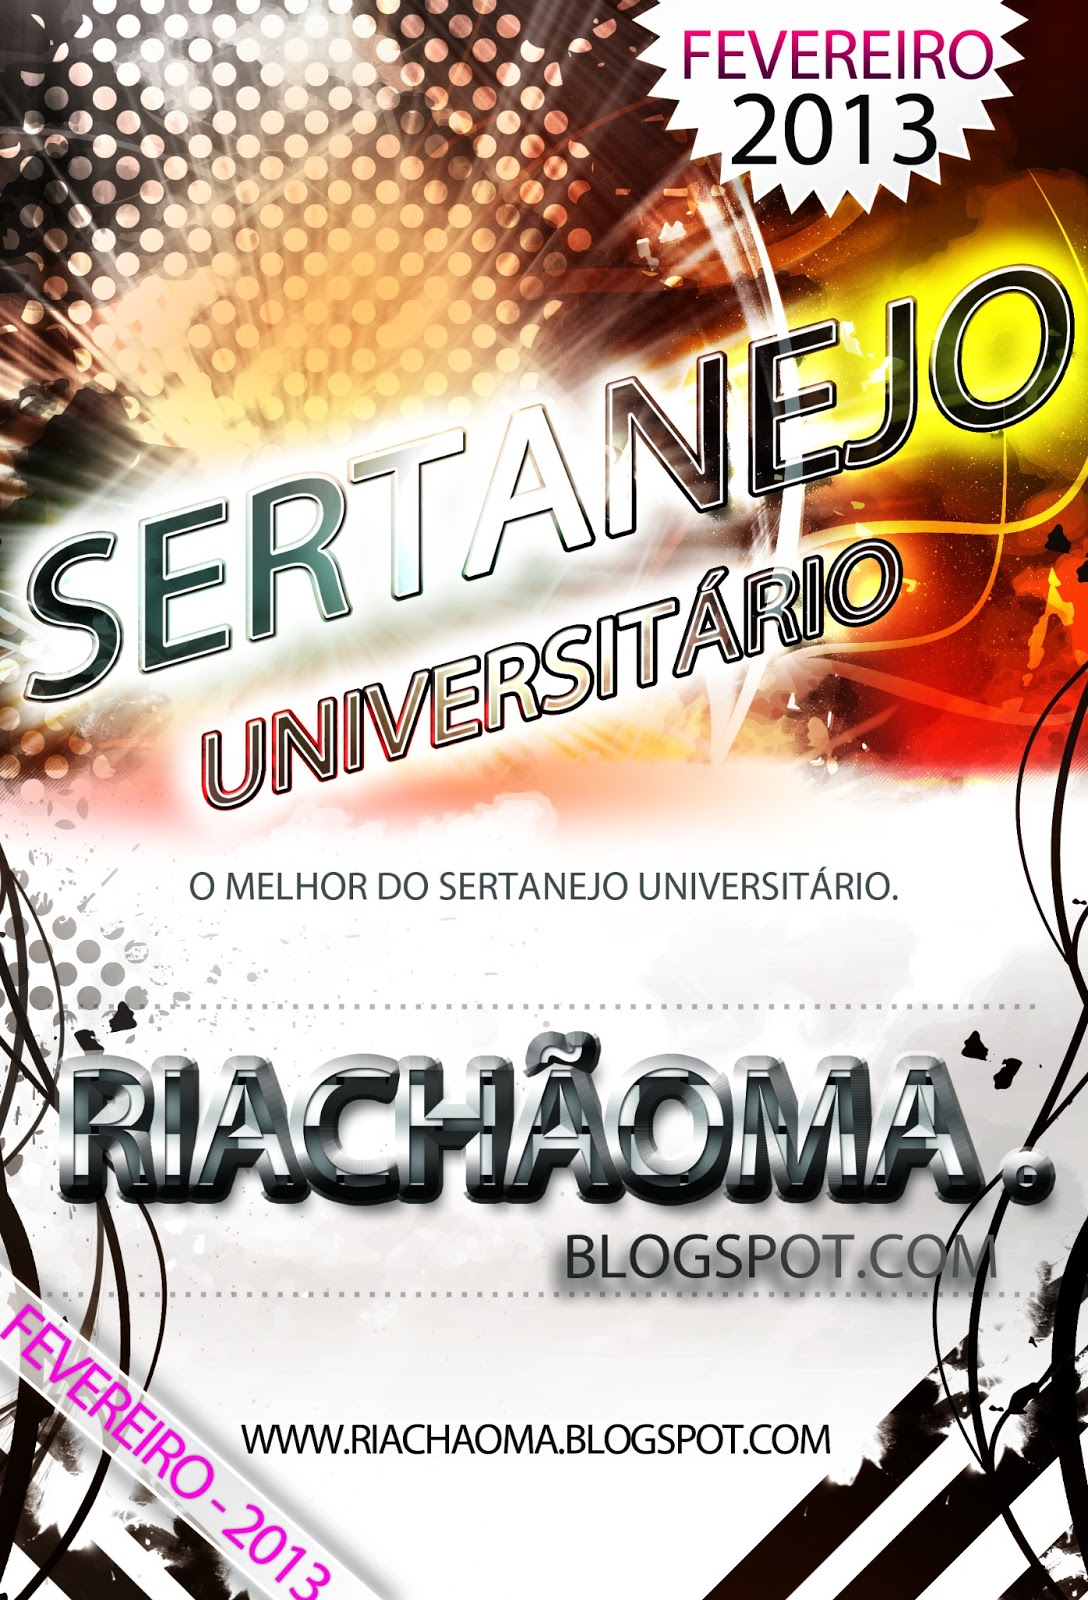 Download do cd sertanejo universitario 2013